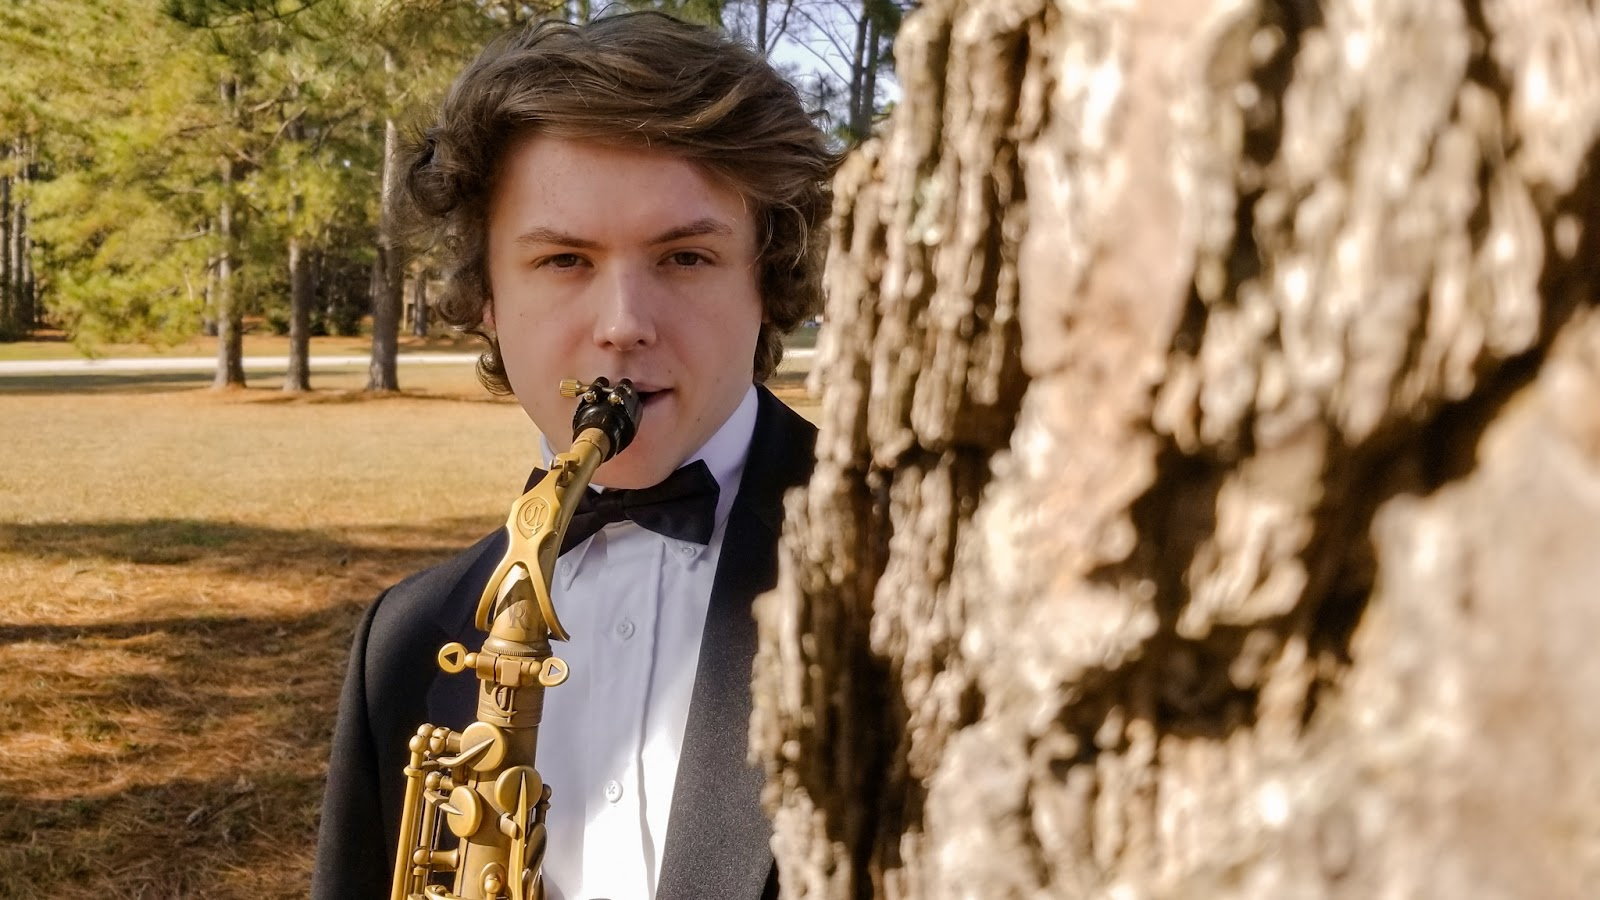 Peter Bailer stands outside behind a large tree while playing the saxophone.